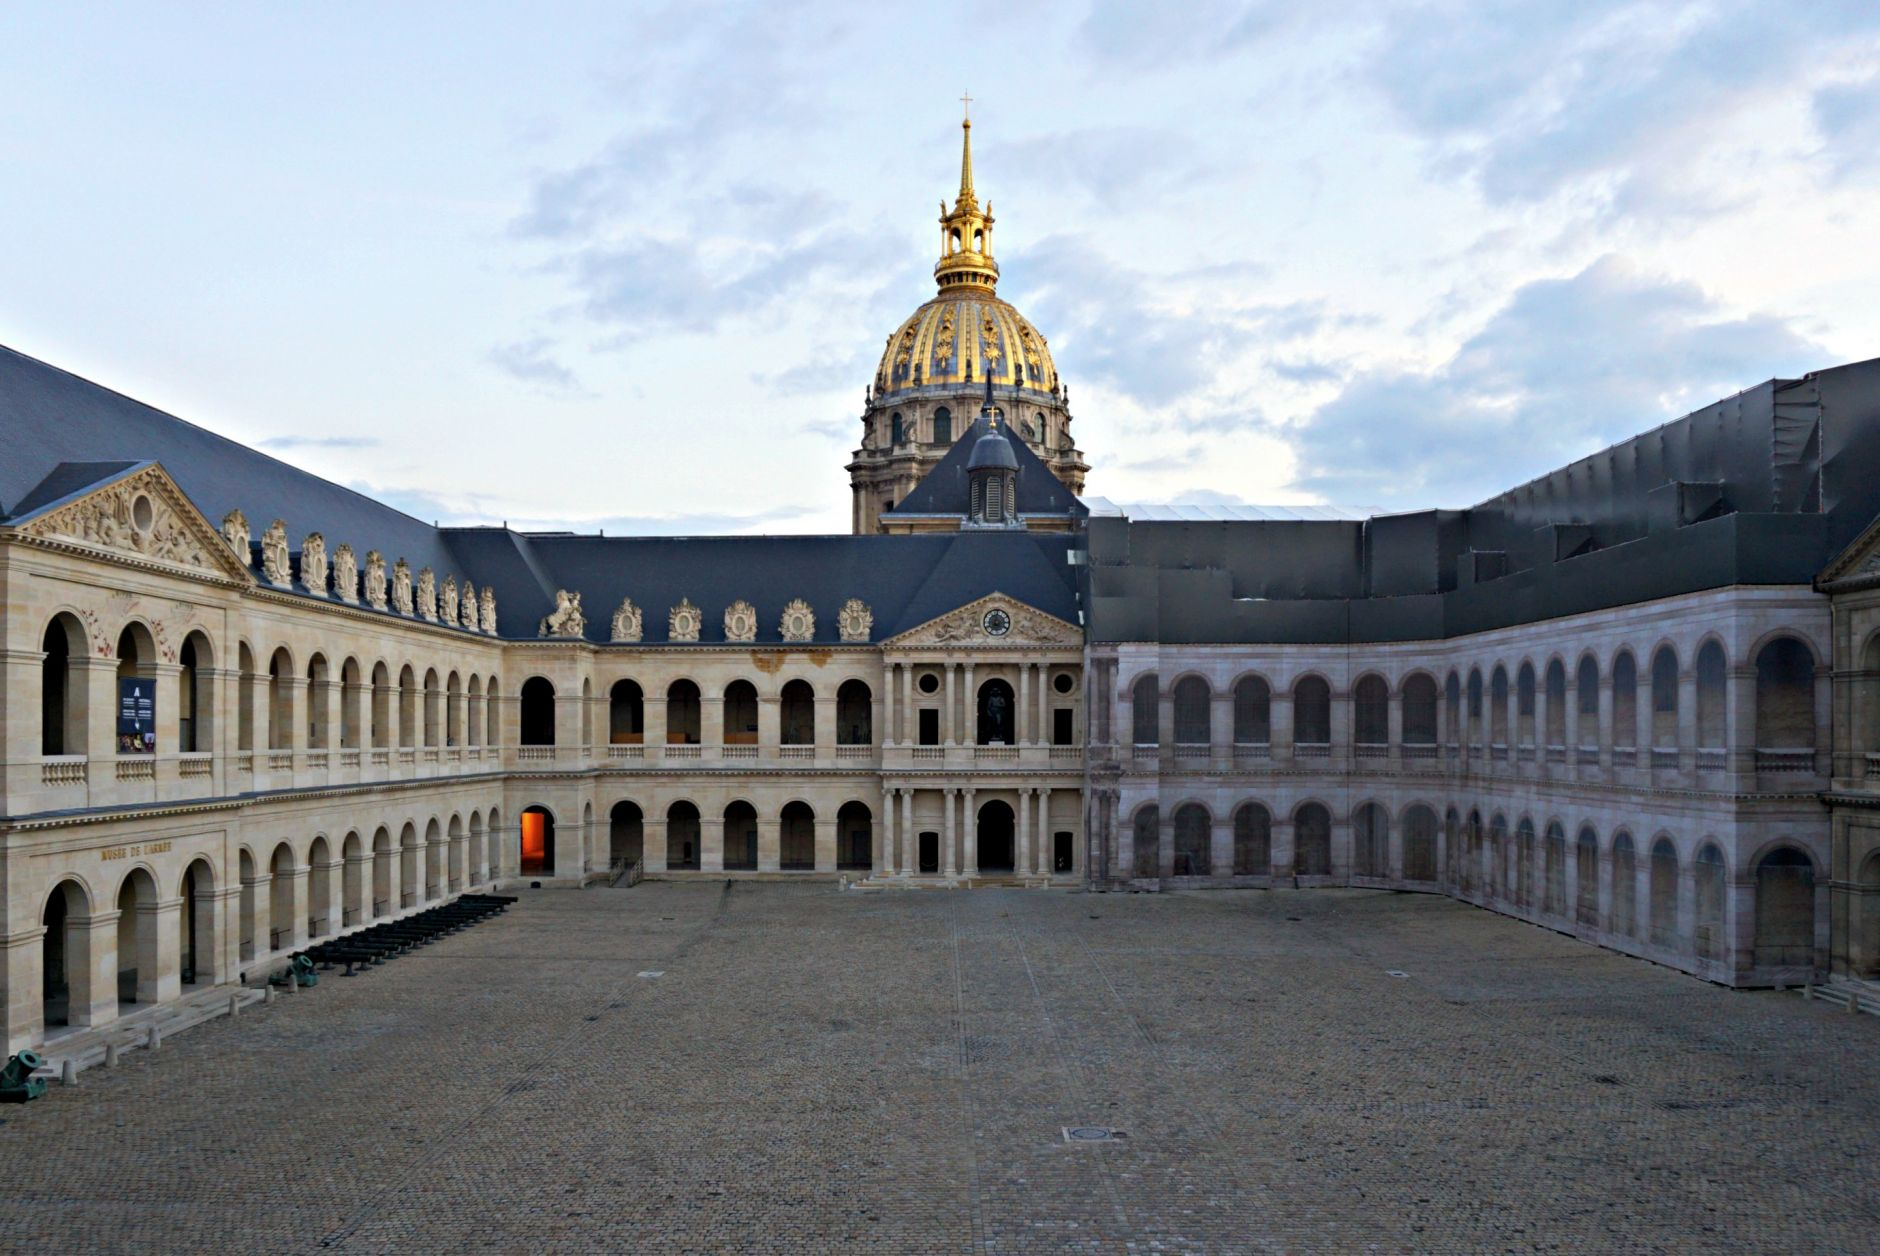 The-Bell-Ross-annual-event-at-the-Invalides-at-Hotel-National-des-Invalides-01